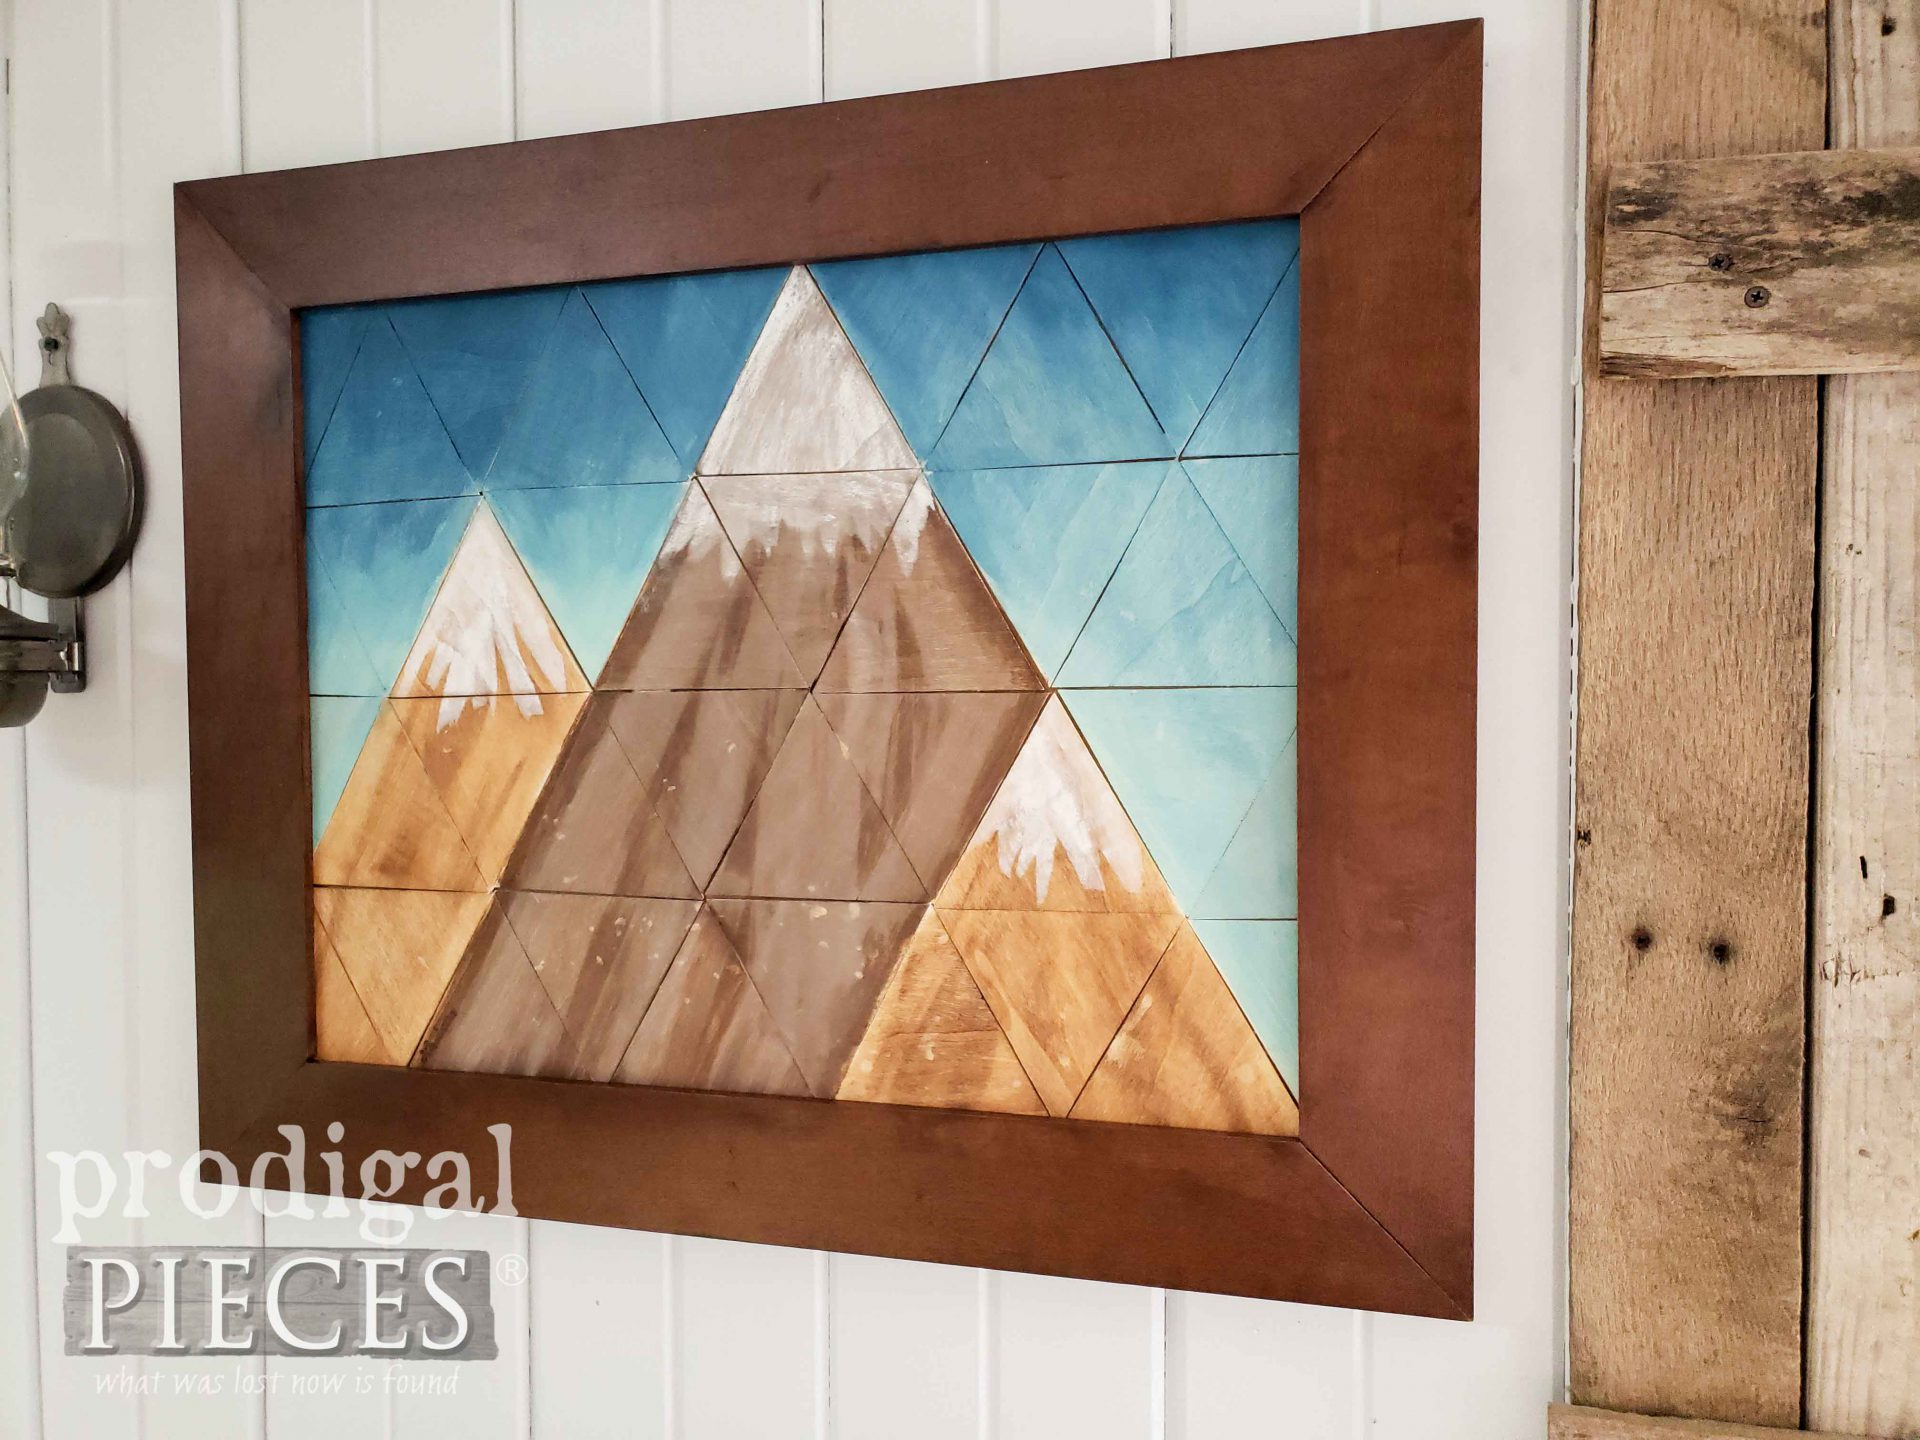 Rustic Farmhouse Wall Art Created with Geometric Shapes by Larissa of Prodigal Pieces | prodigalpieces.com #prodigalpieces #art #farmhouse #home #handmade #homedecor